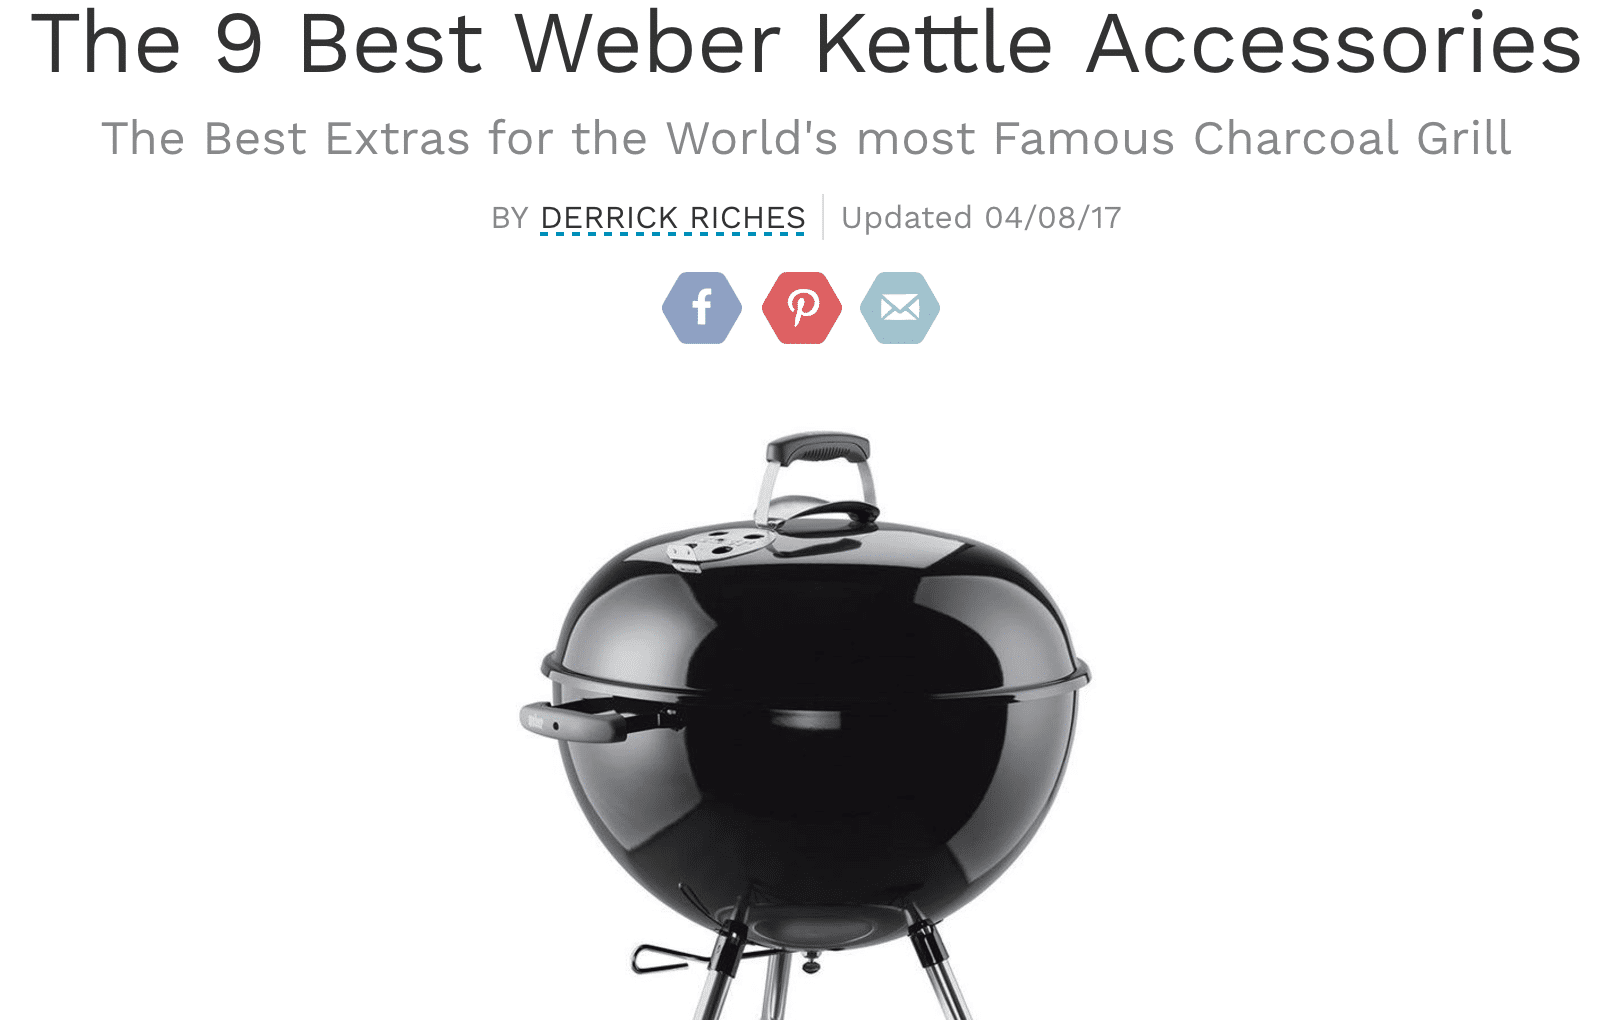 KettlePizza and Smokenator Make List of Top Nine Weber Kettle Accessories!